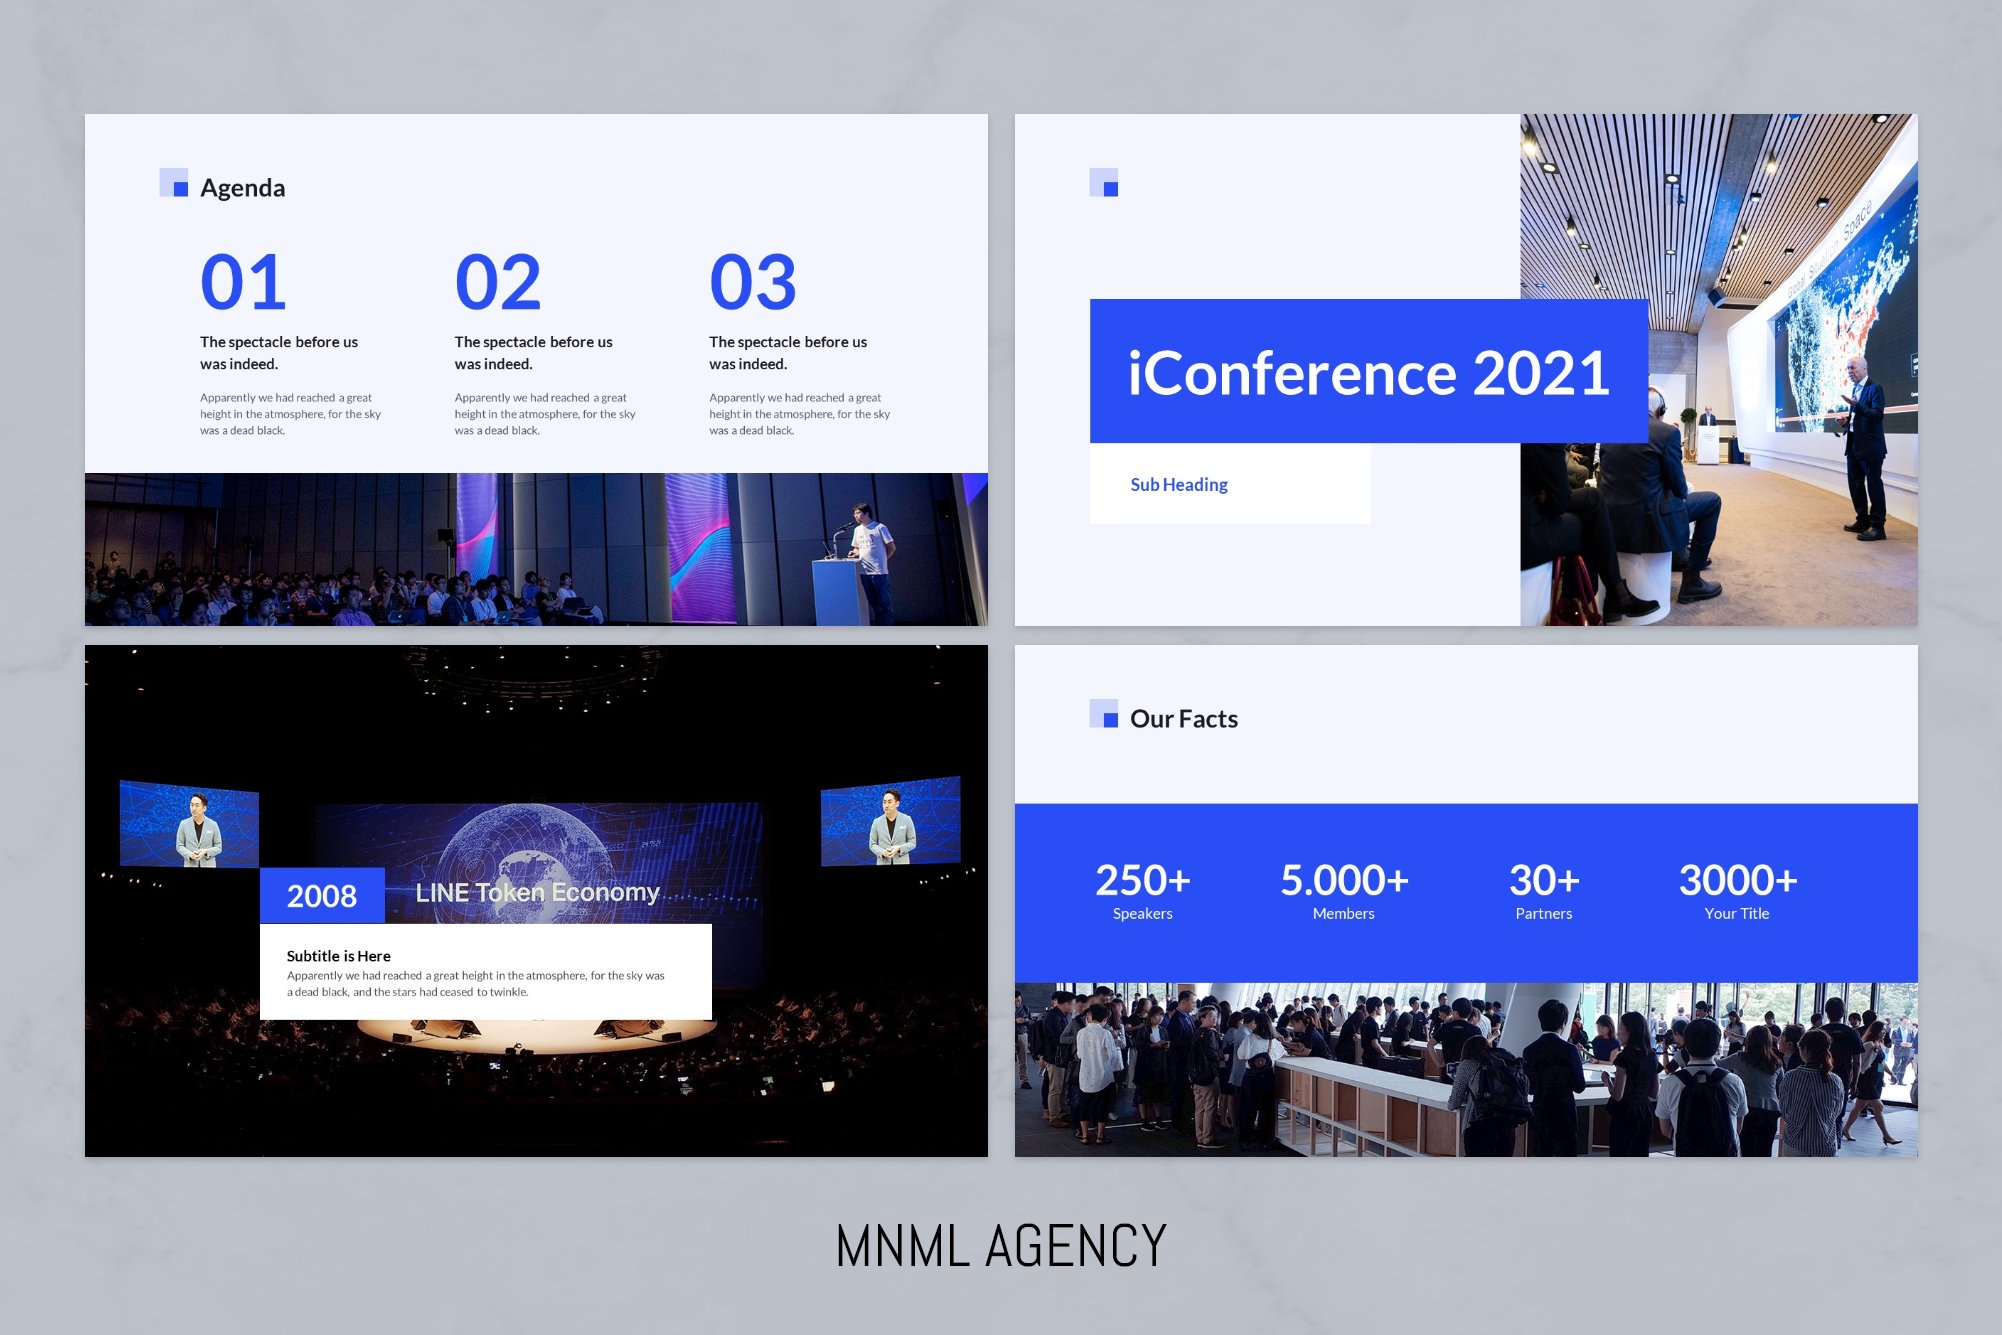 Agenda of conference.